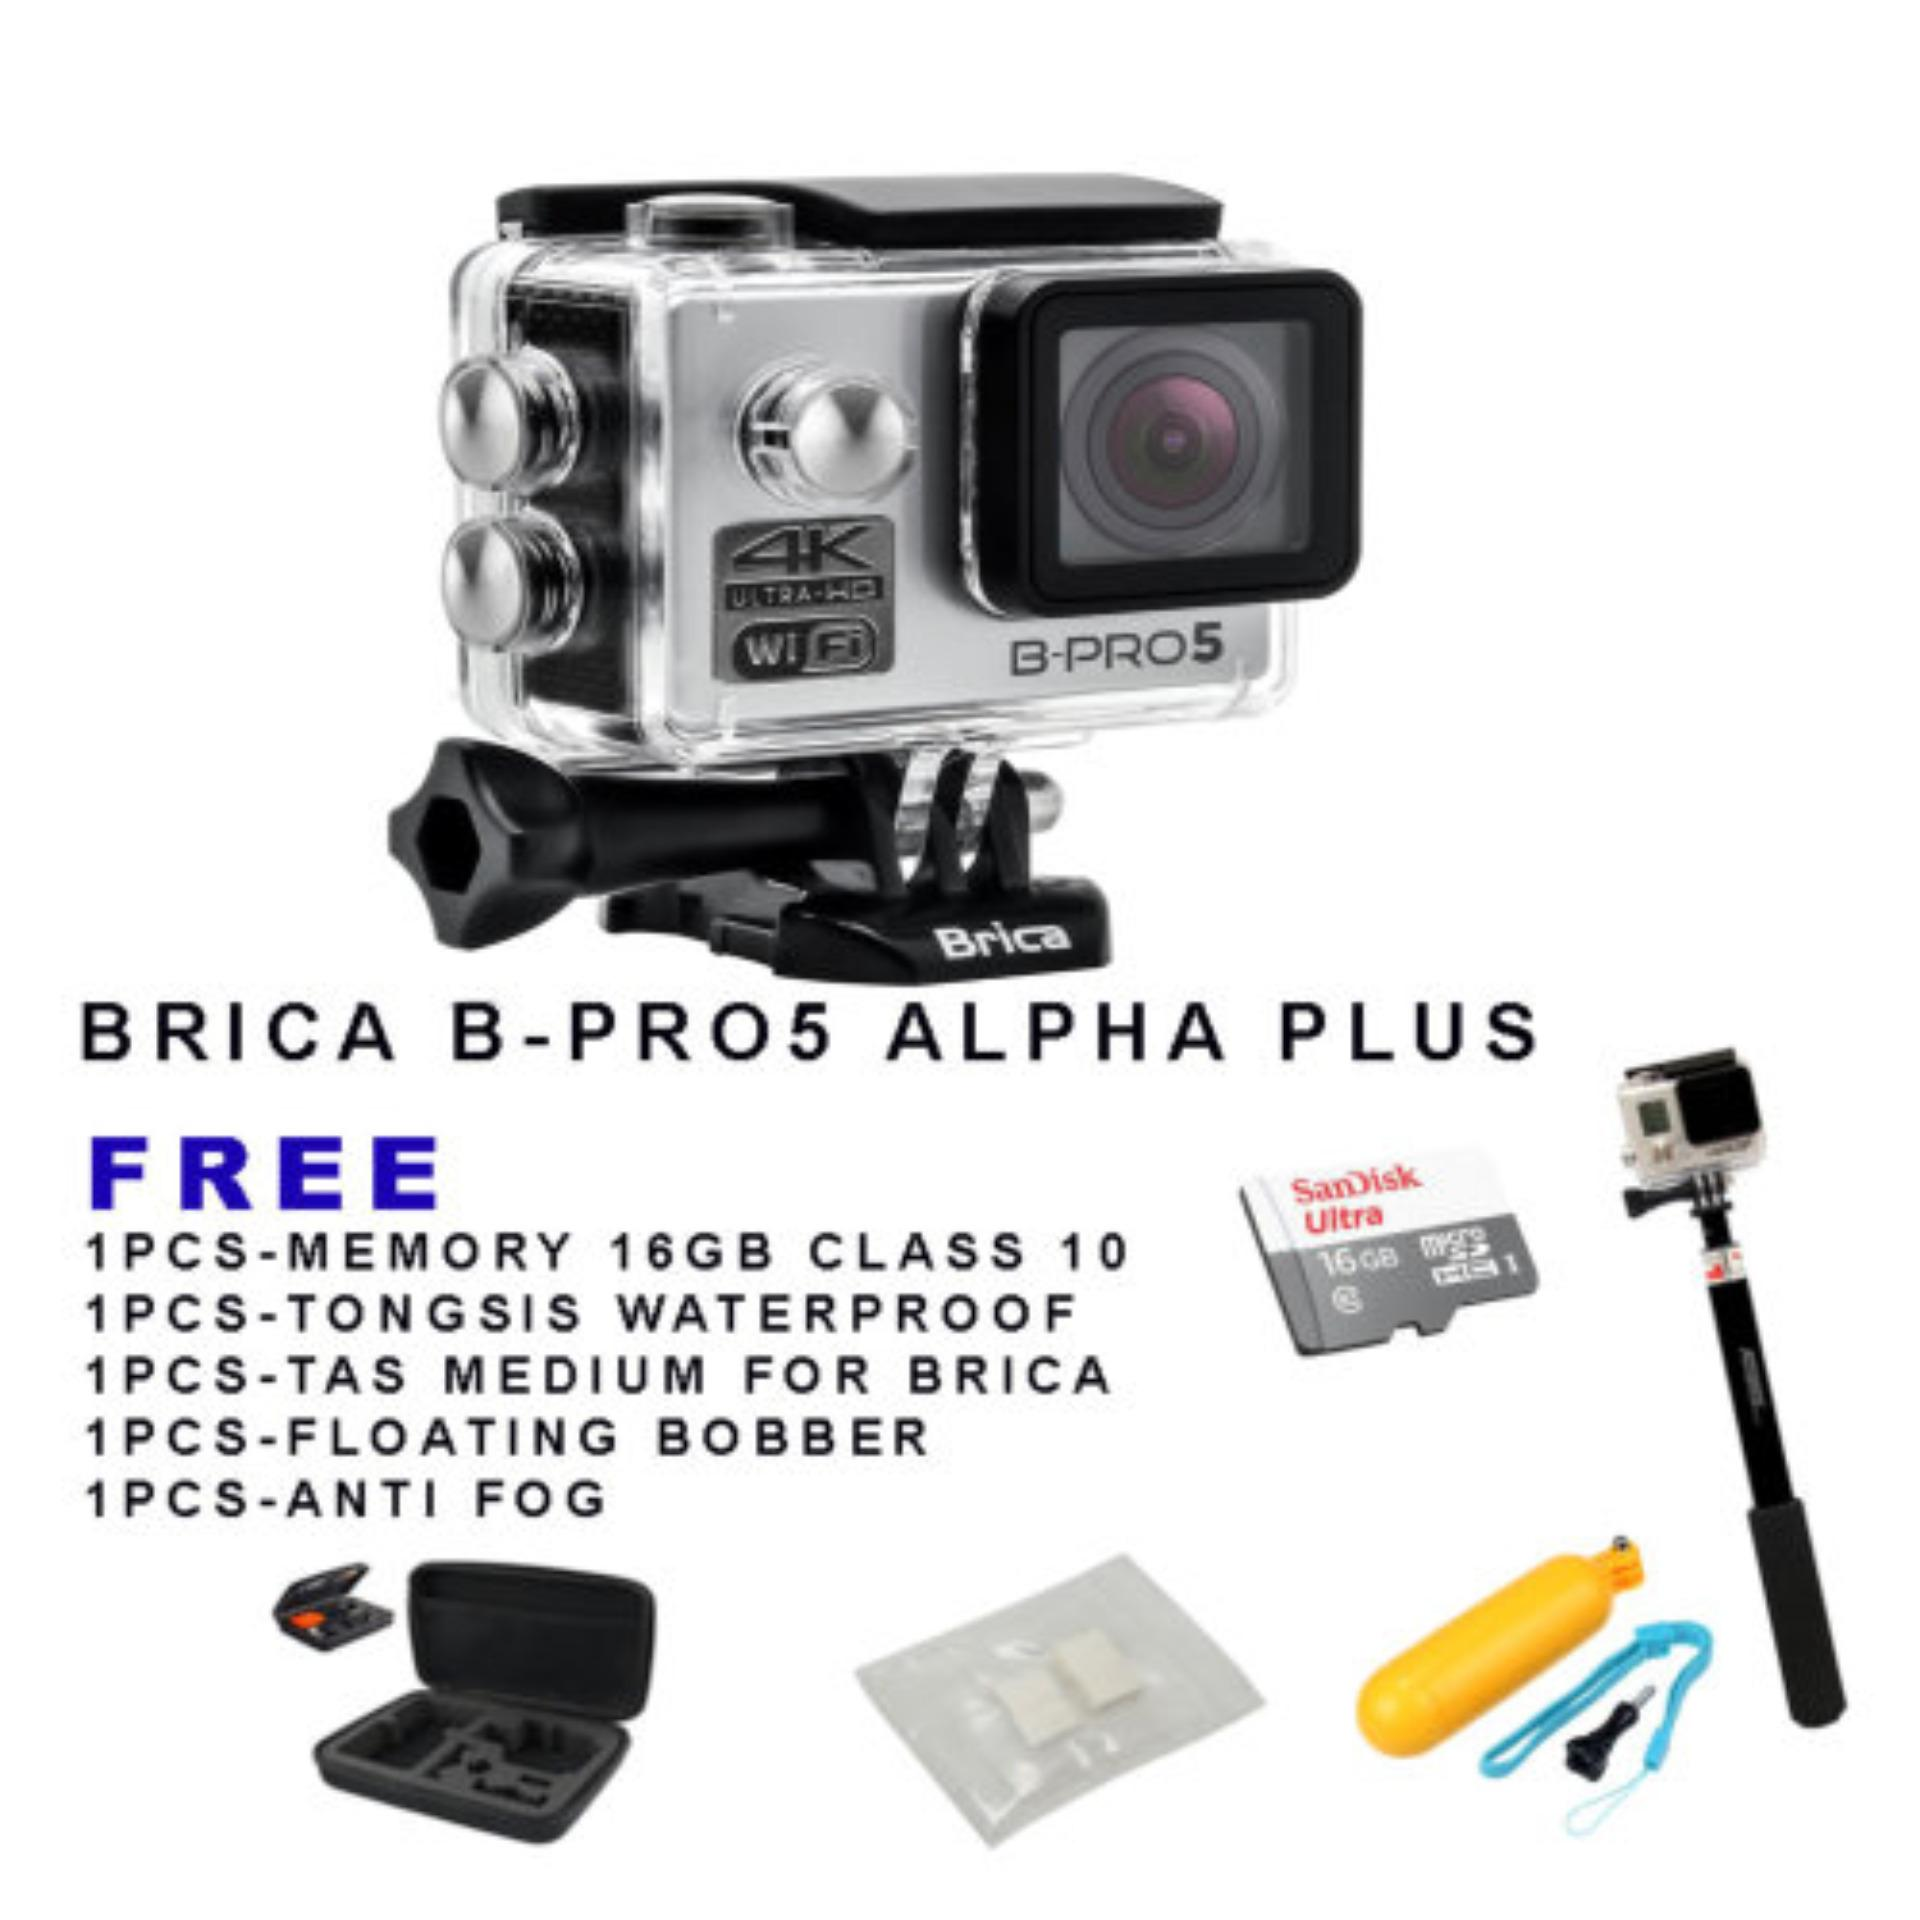 ... Brica B-Pro 5 Alpha Plus - Silver Action Camera Free Paket ...